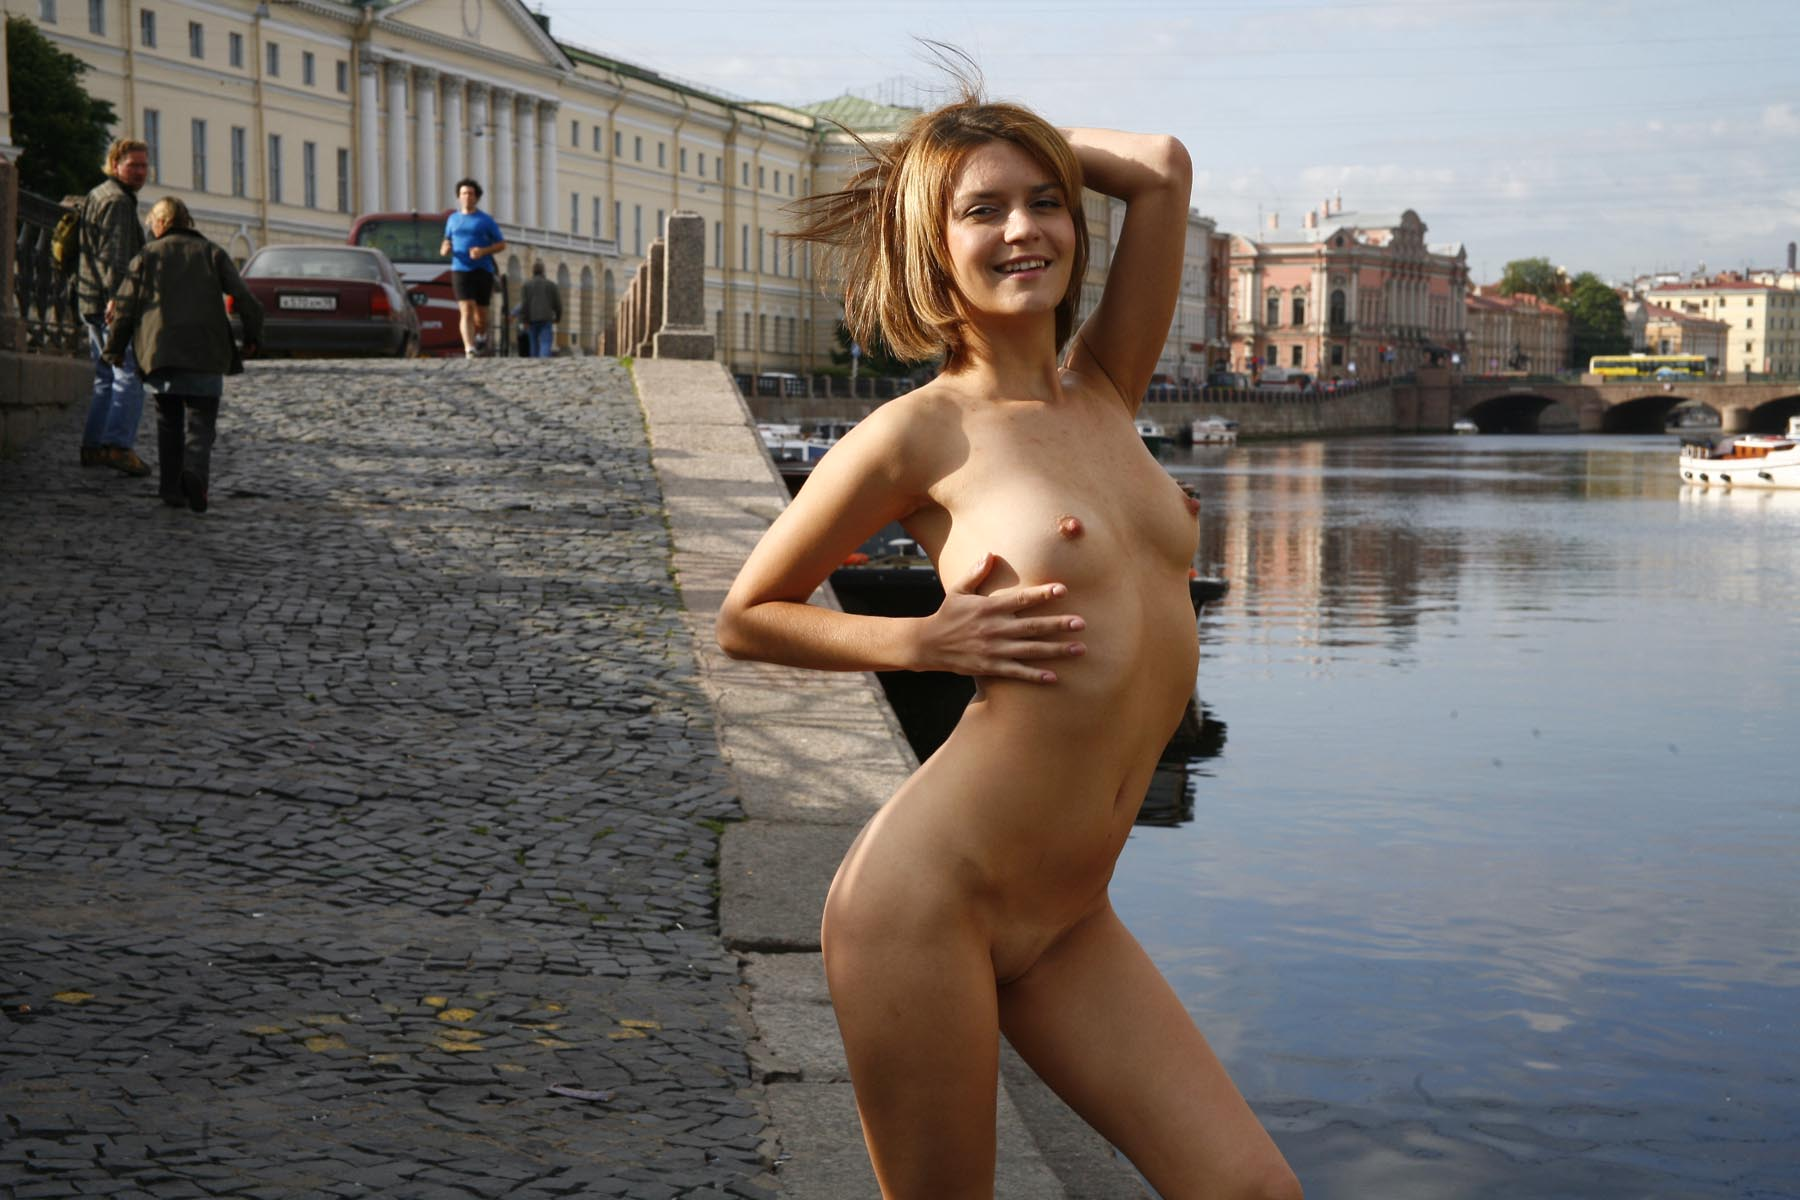 Crazy Russian Girl Exposes Her Naked Body At Pubic -5938